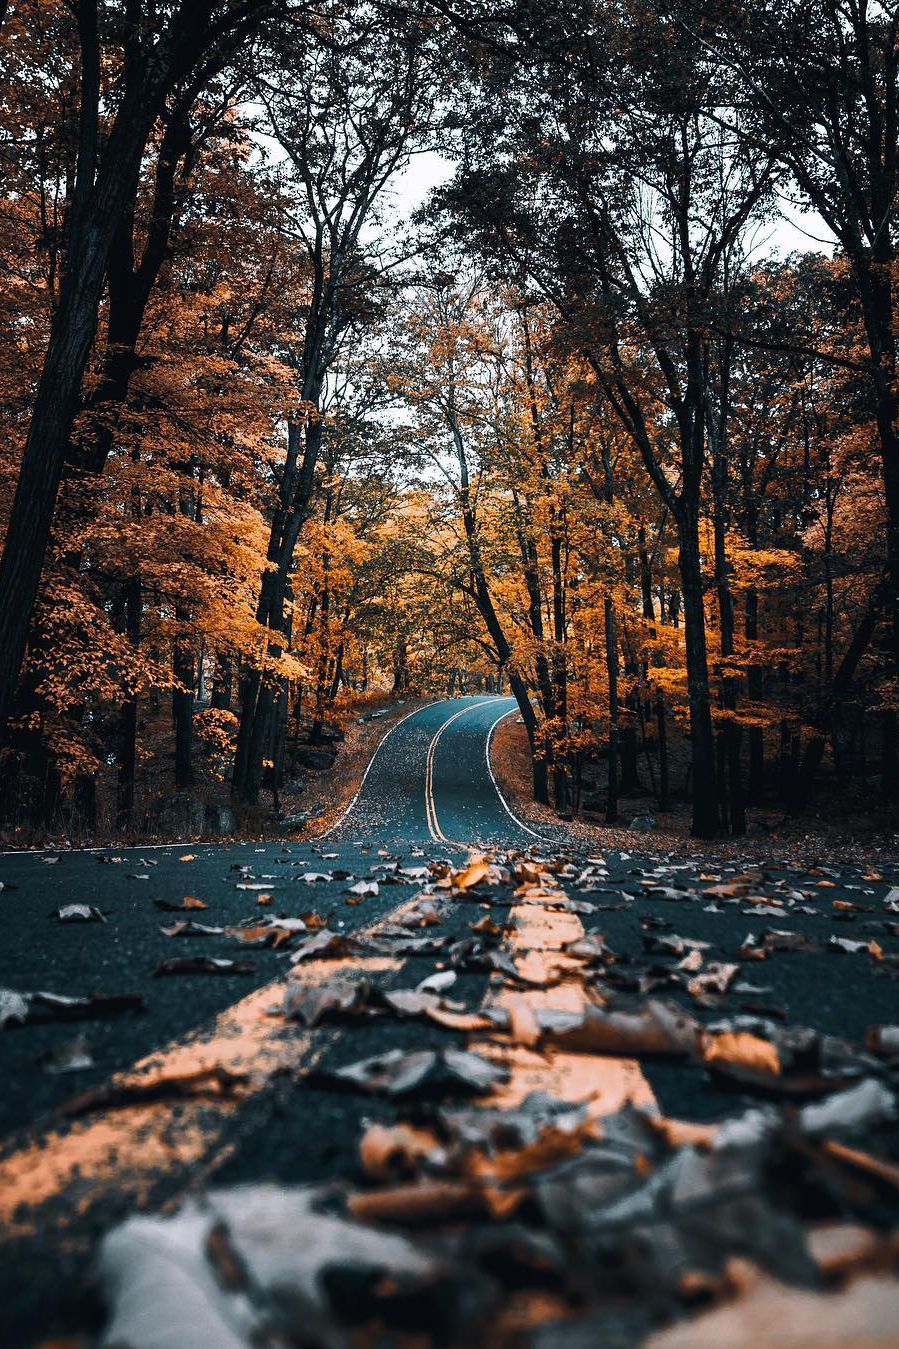 Autumn Cozy : Photo | Open roads | Landscape Photography ...